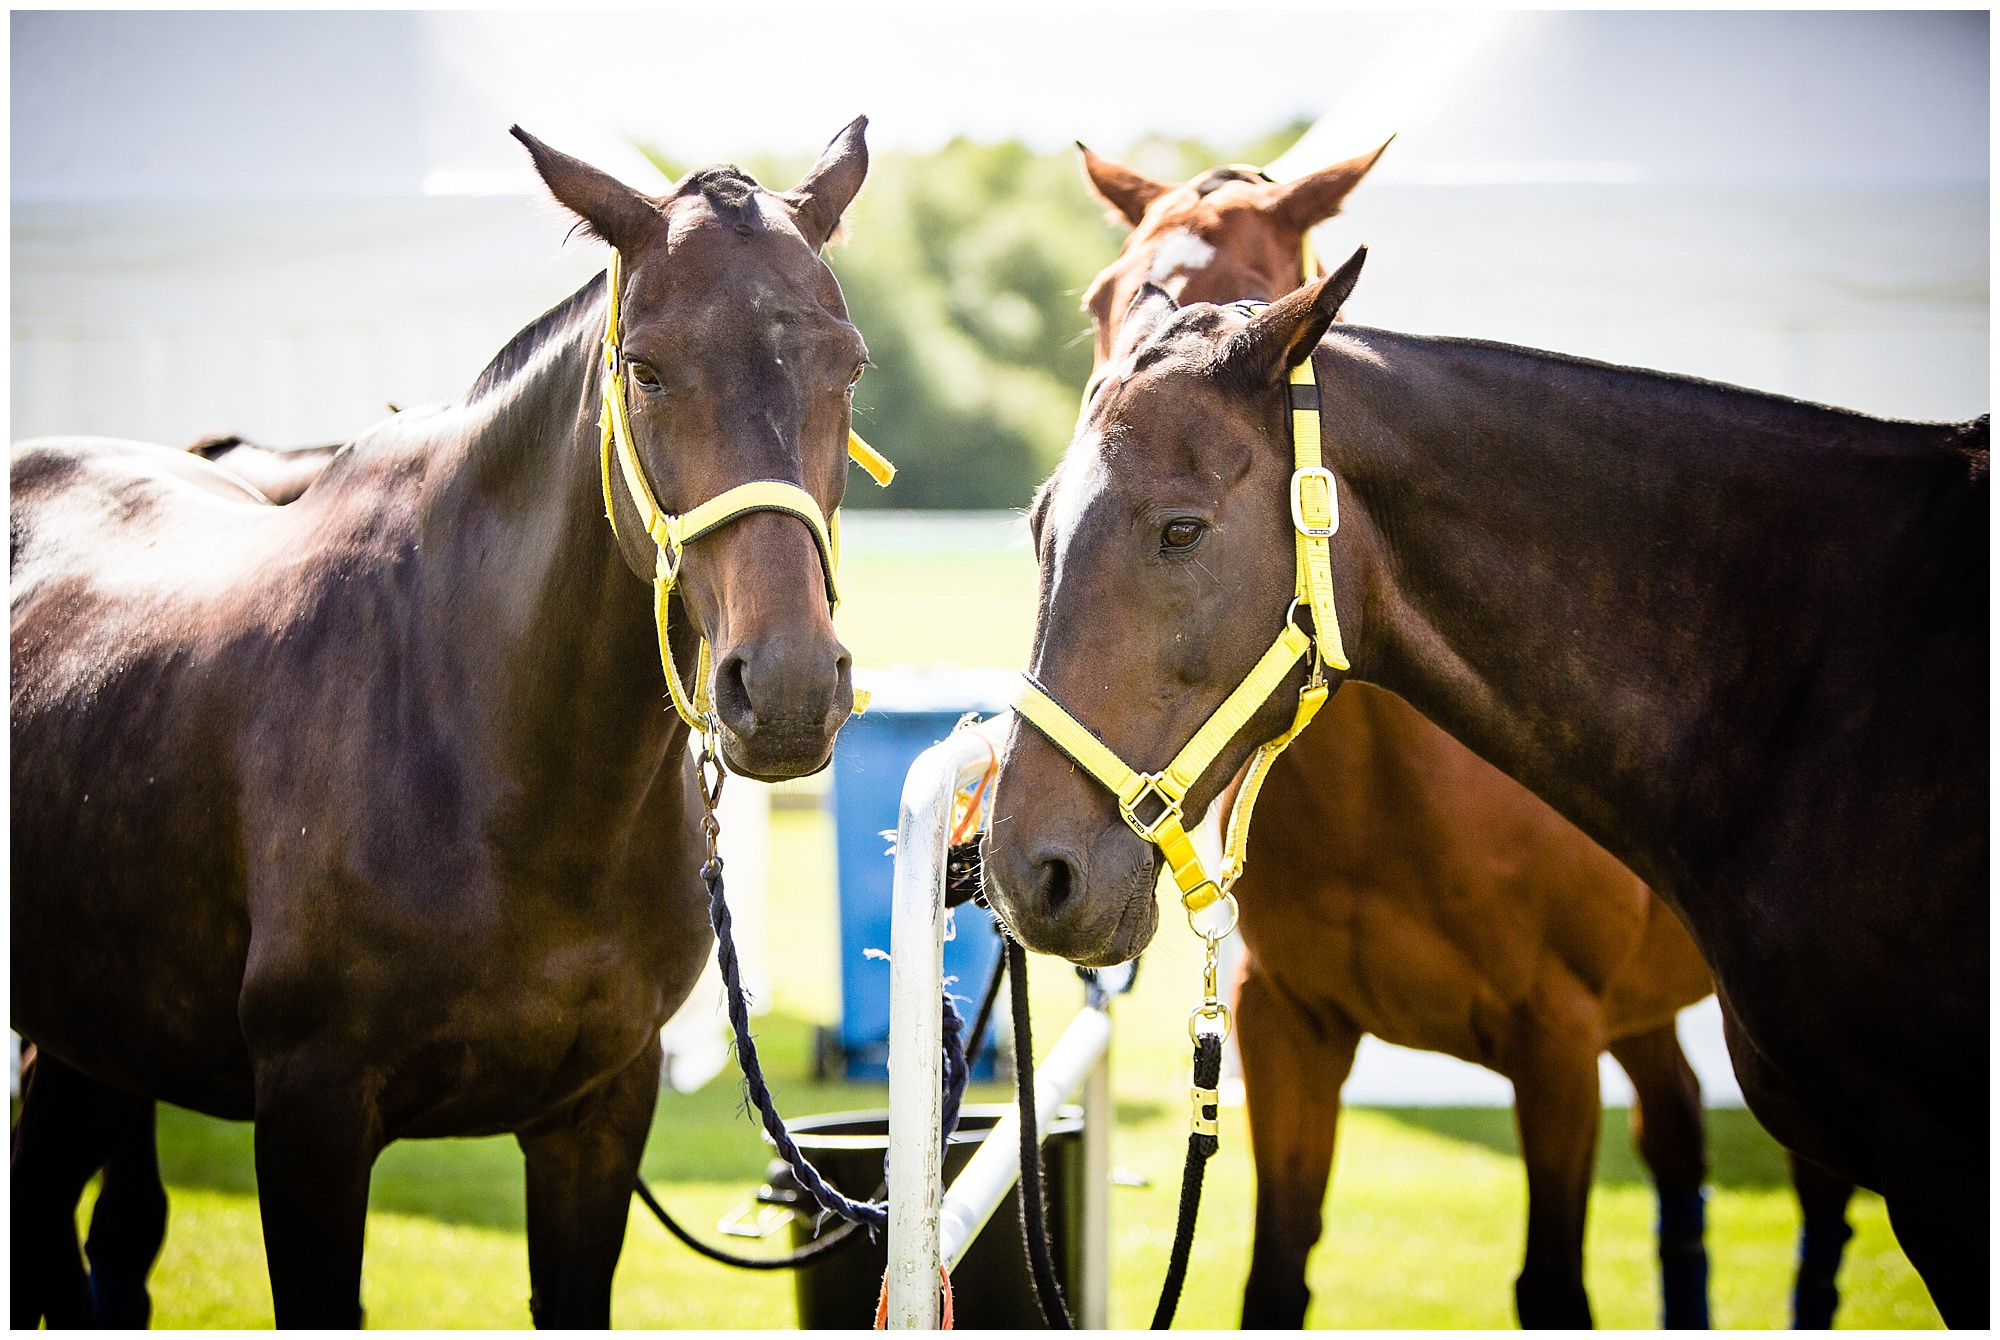 polo ponies ready for the polo match at chester race course